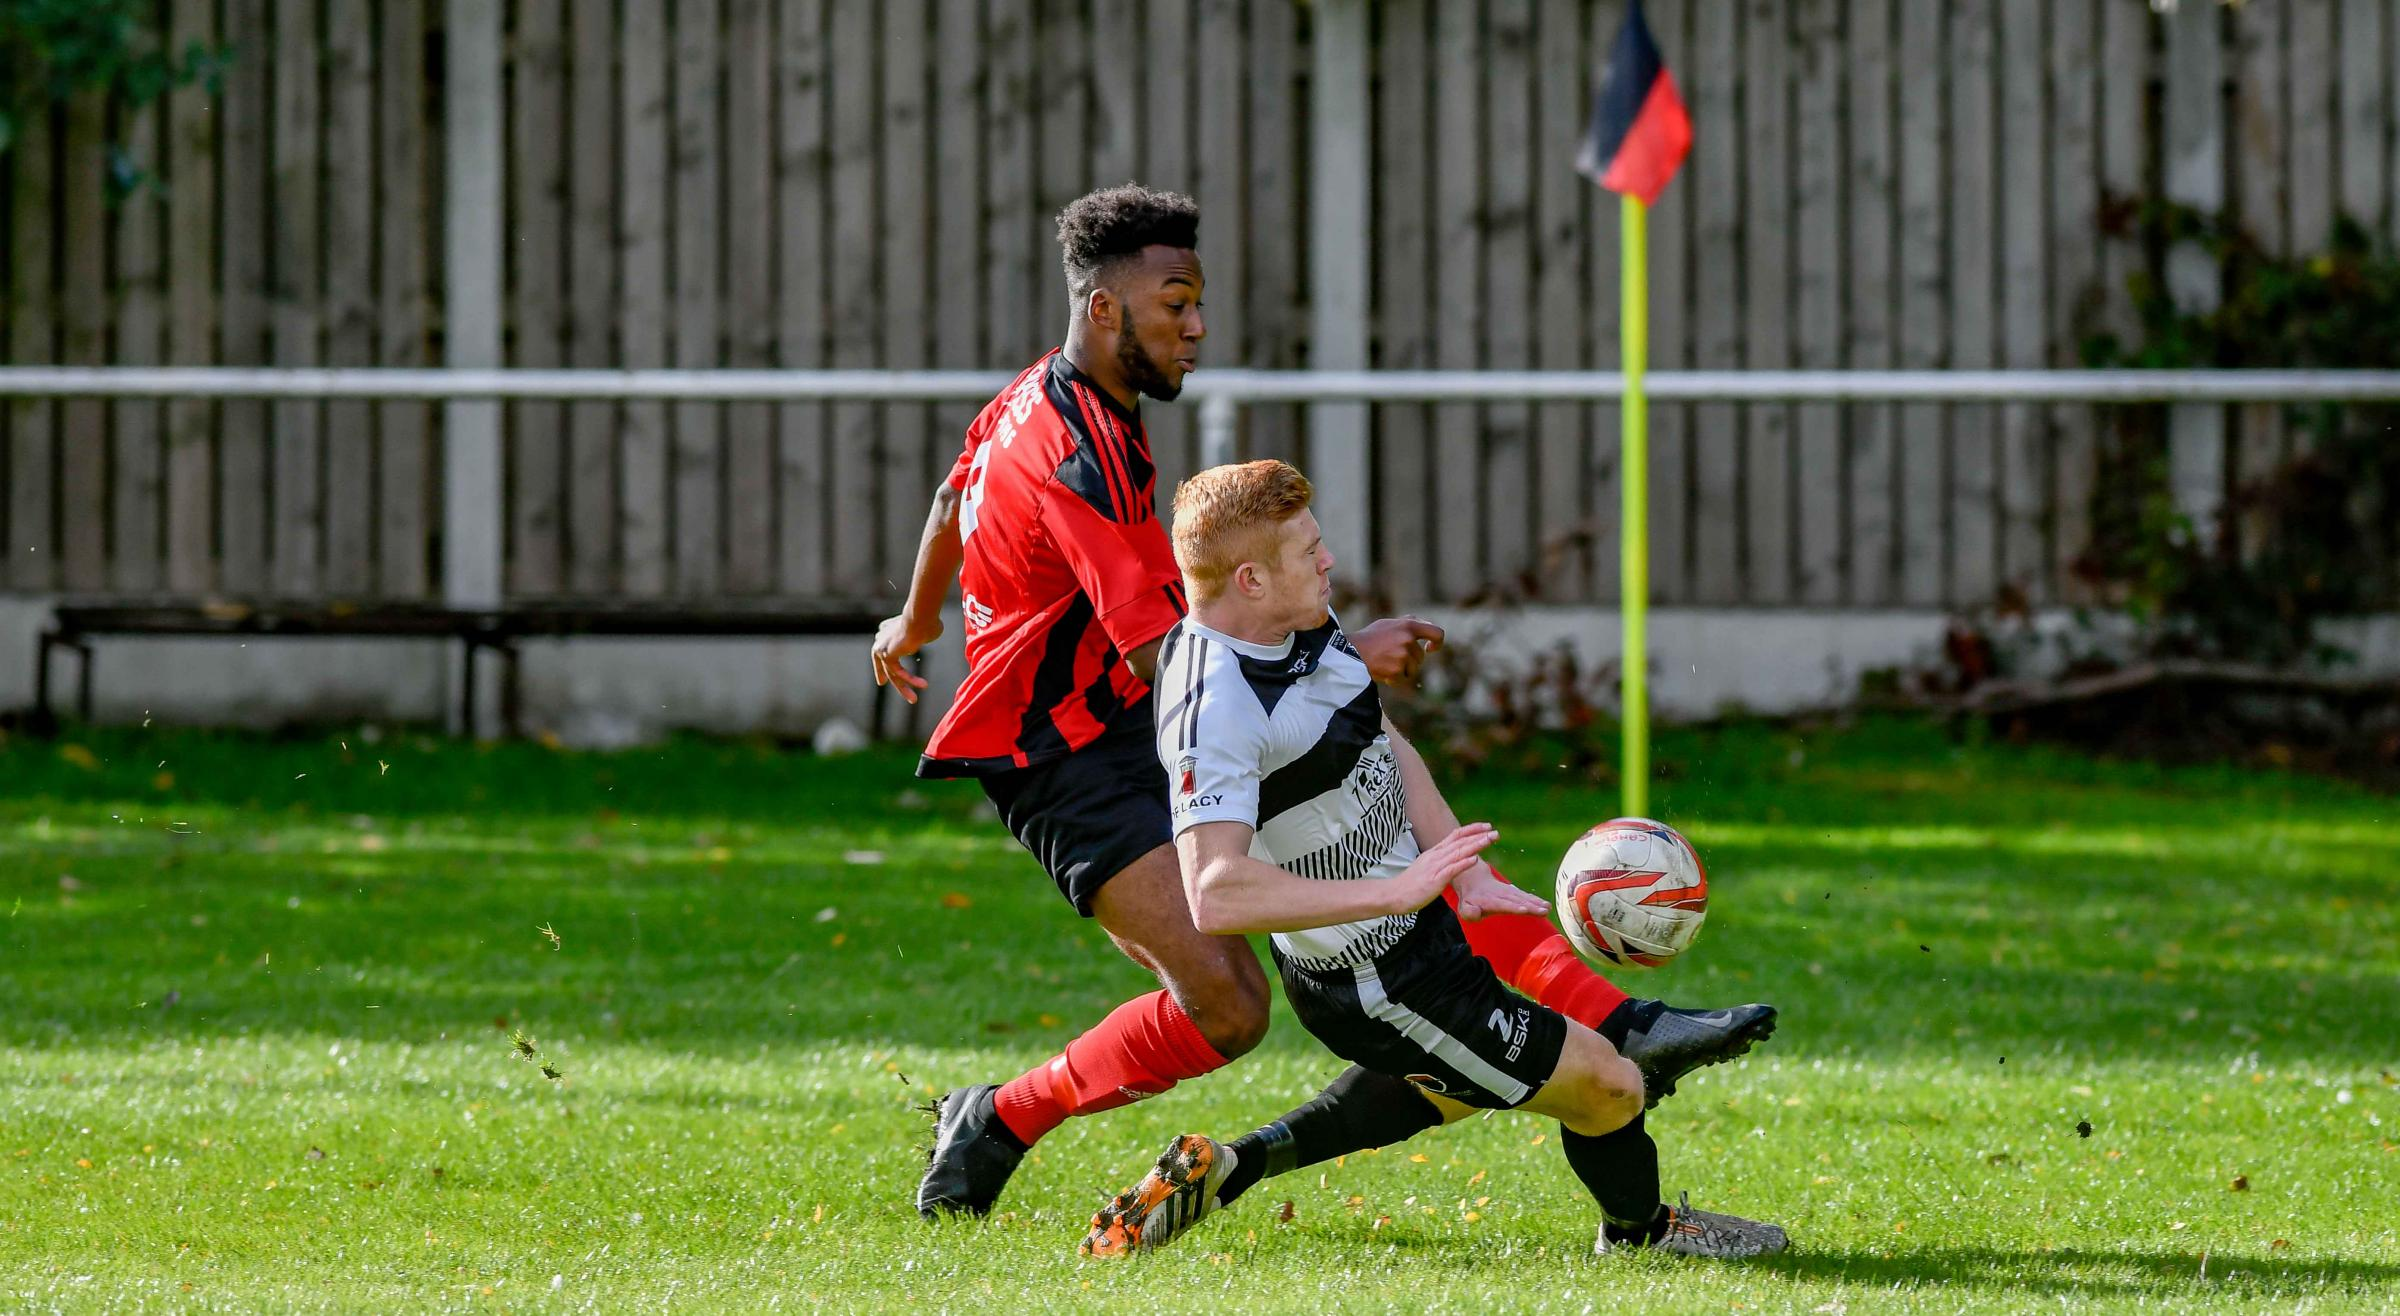 Laurence Sorhaindo netted an early equaliser but he could not prevent Campion from falling to a battling defeat at Liversedge in the West Riding County Cup Picture: Andy Garbutt